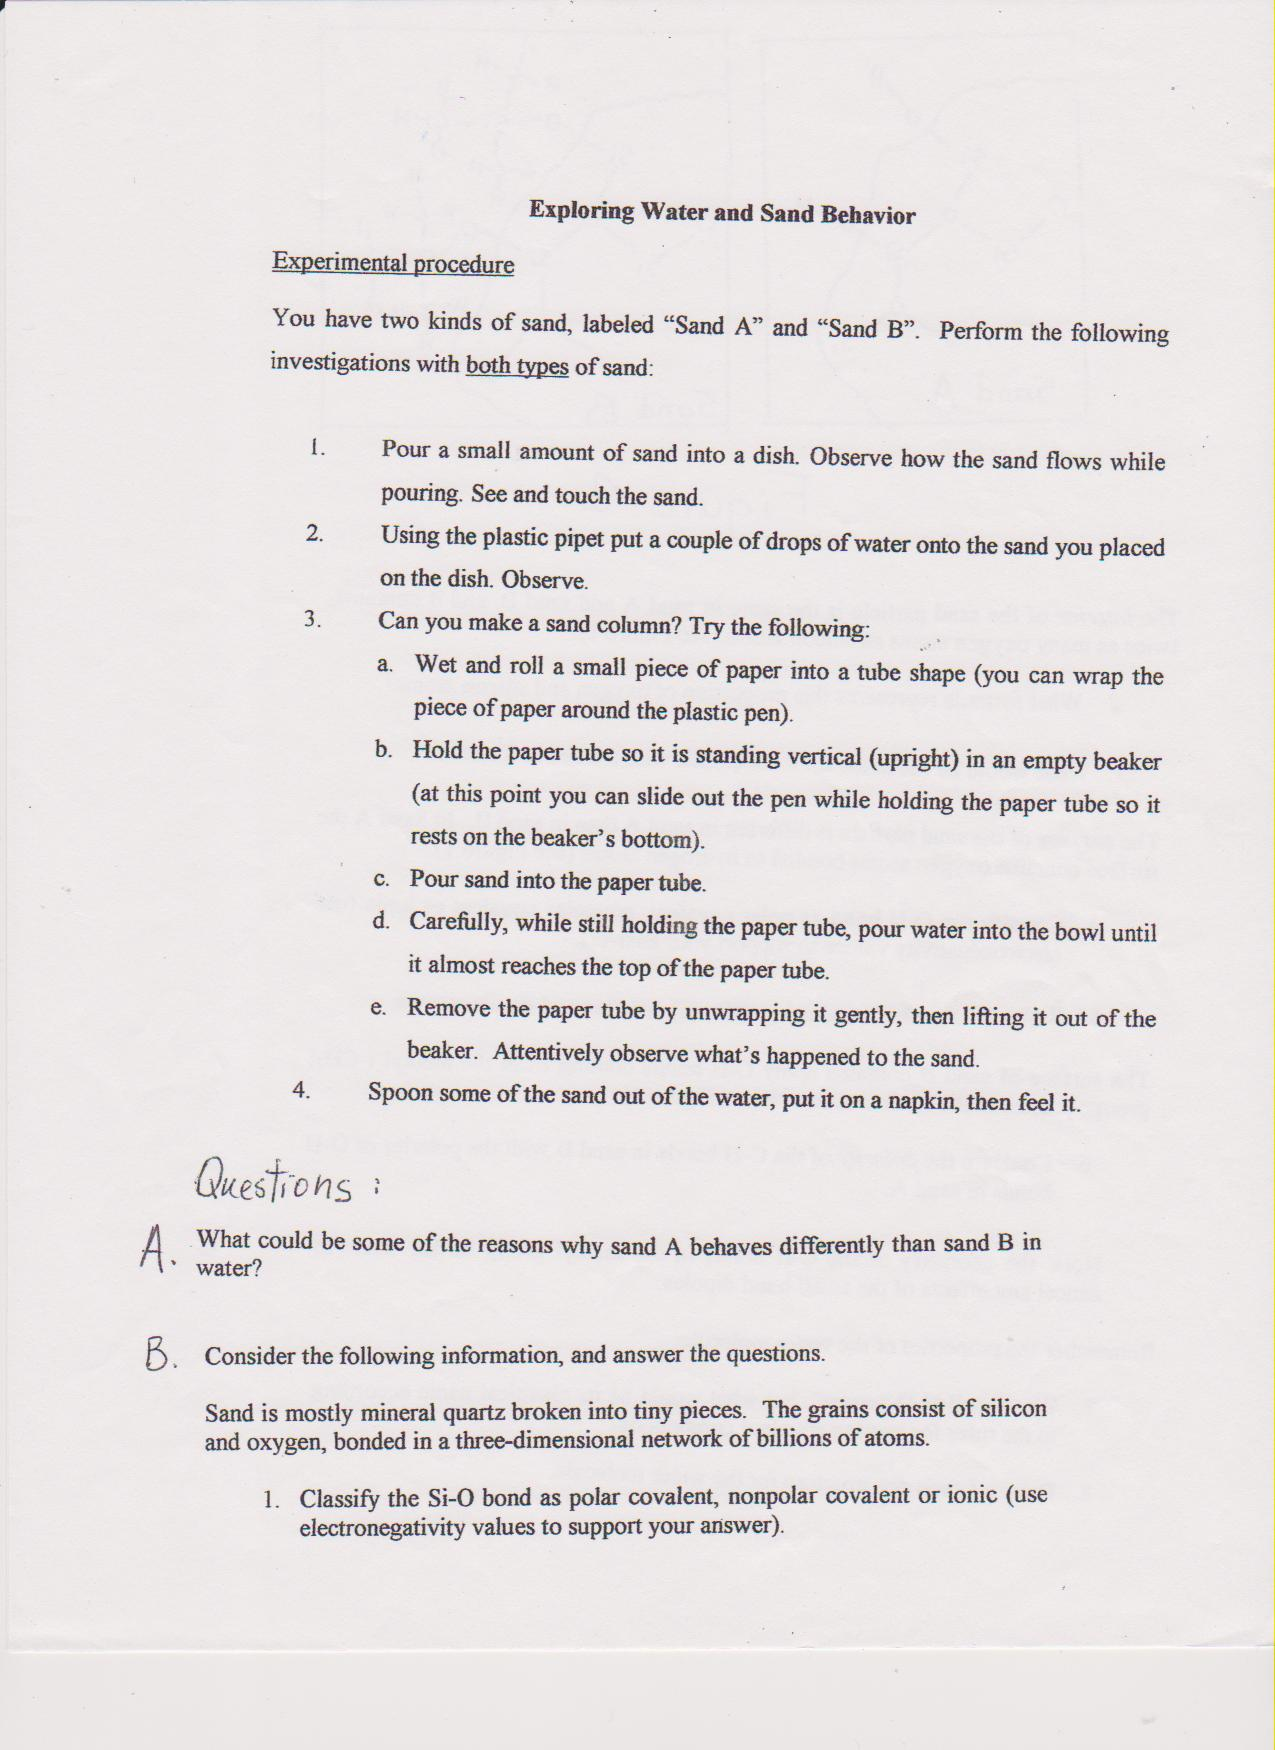 Worksheet Dna The Double Helix Worksheet Answers